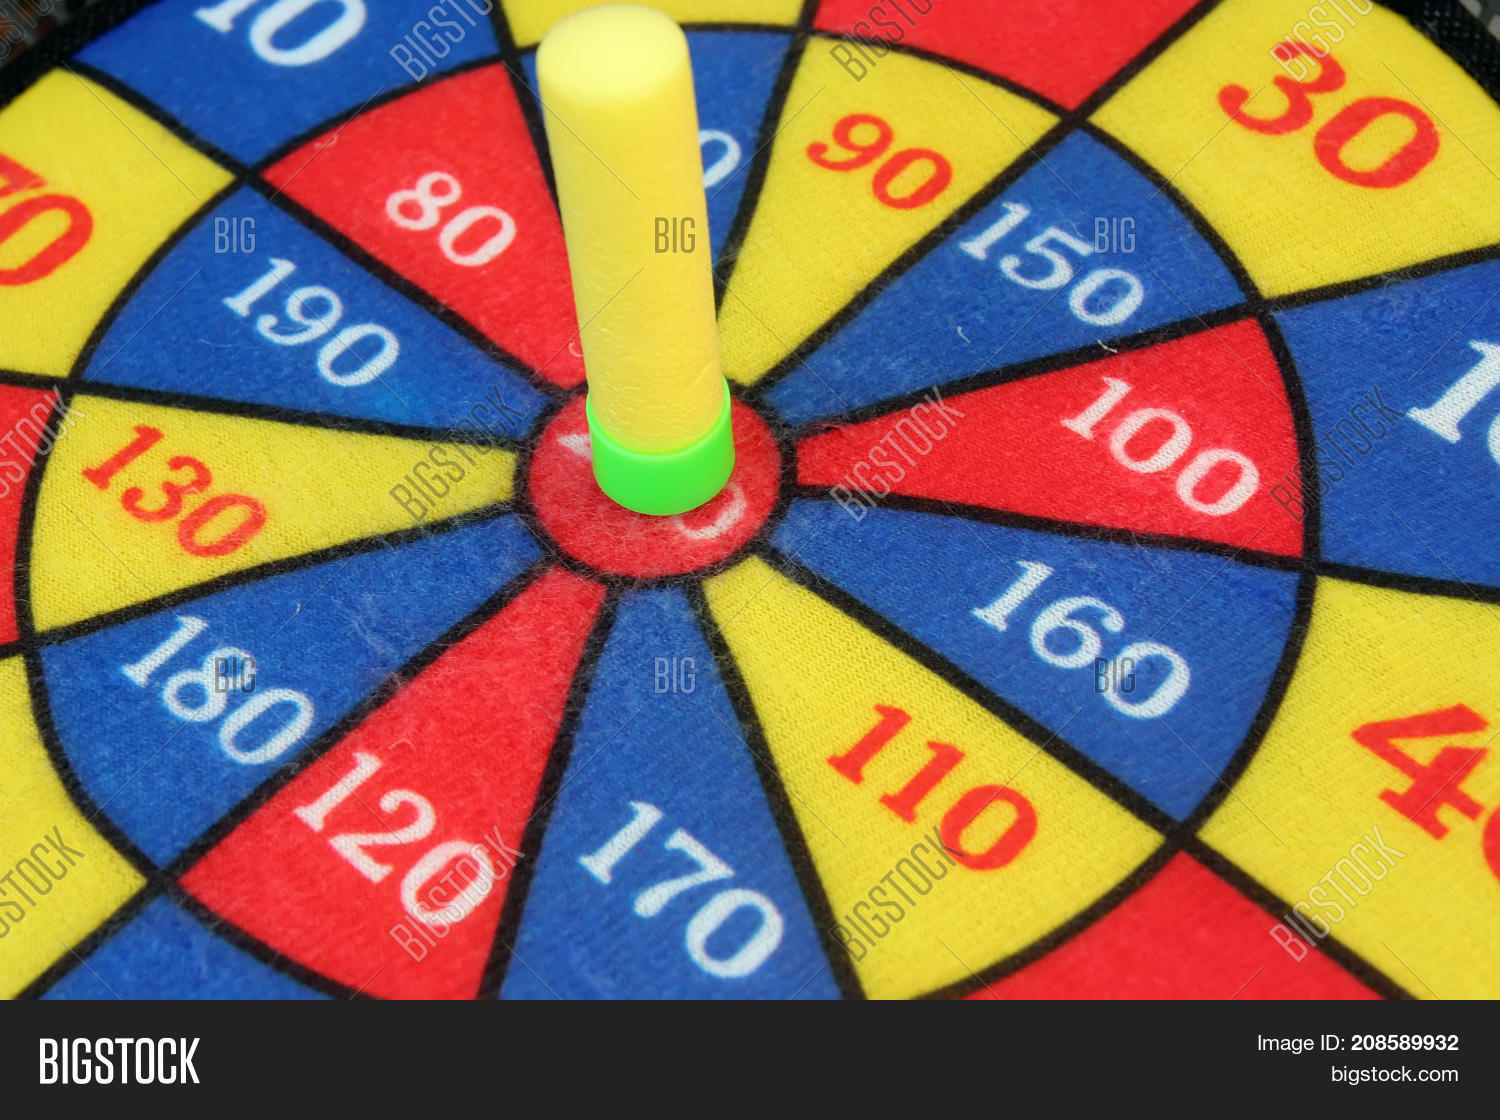 Target Toy Kids Dart Image Photo Free Trial Bigstock